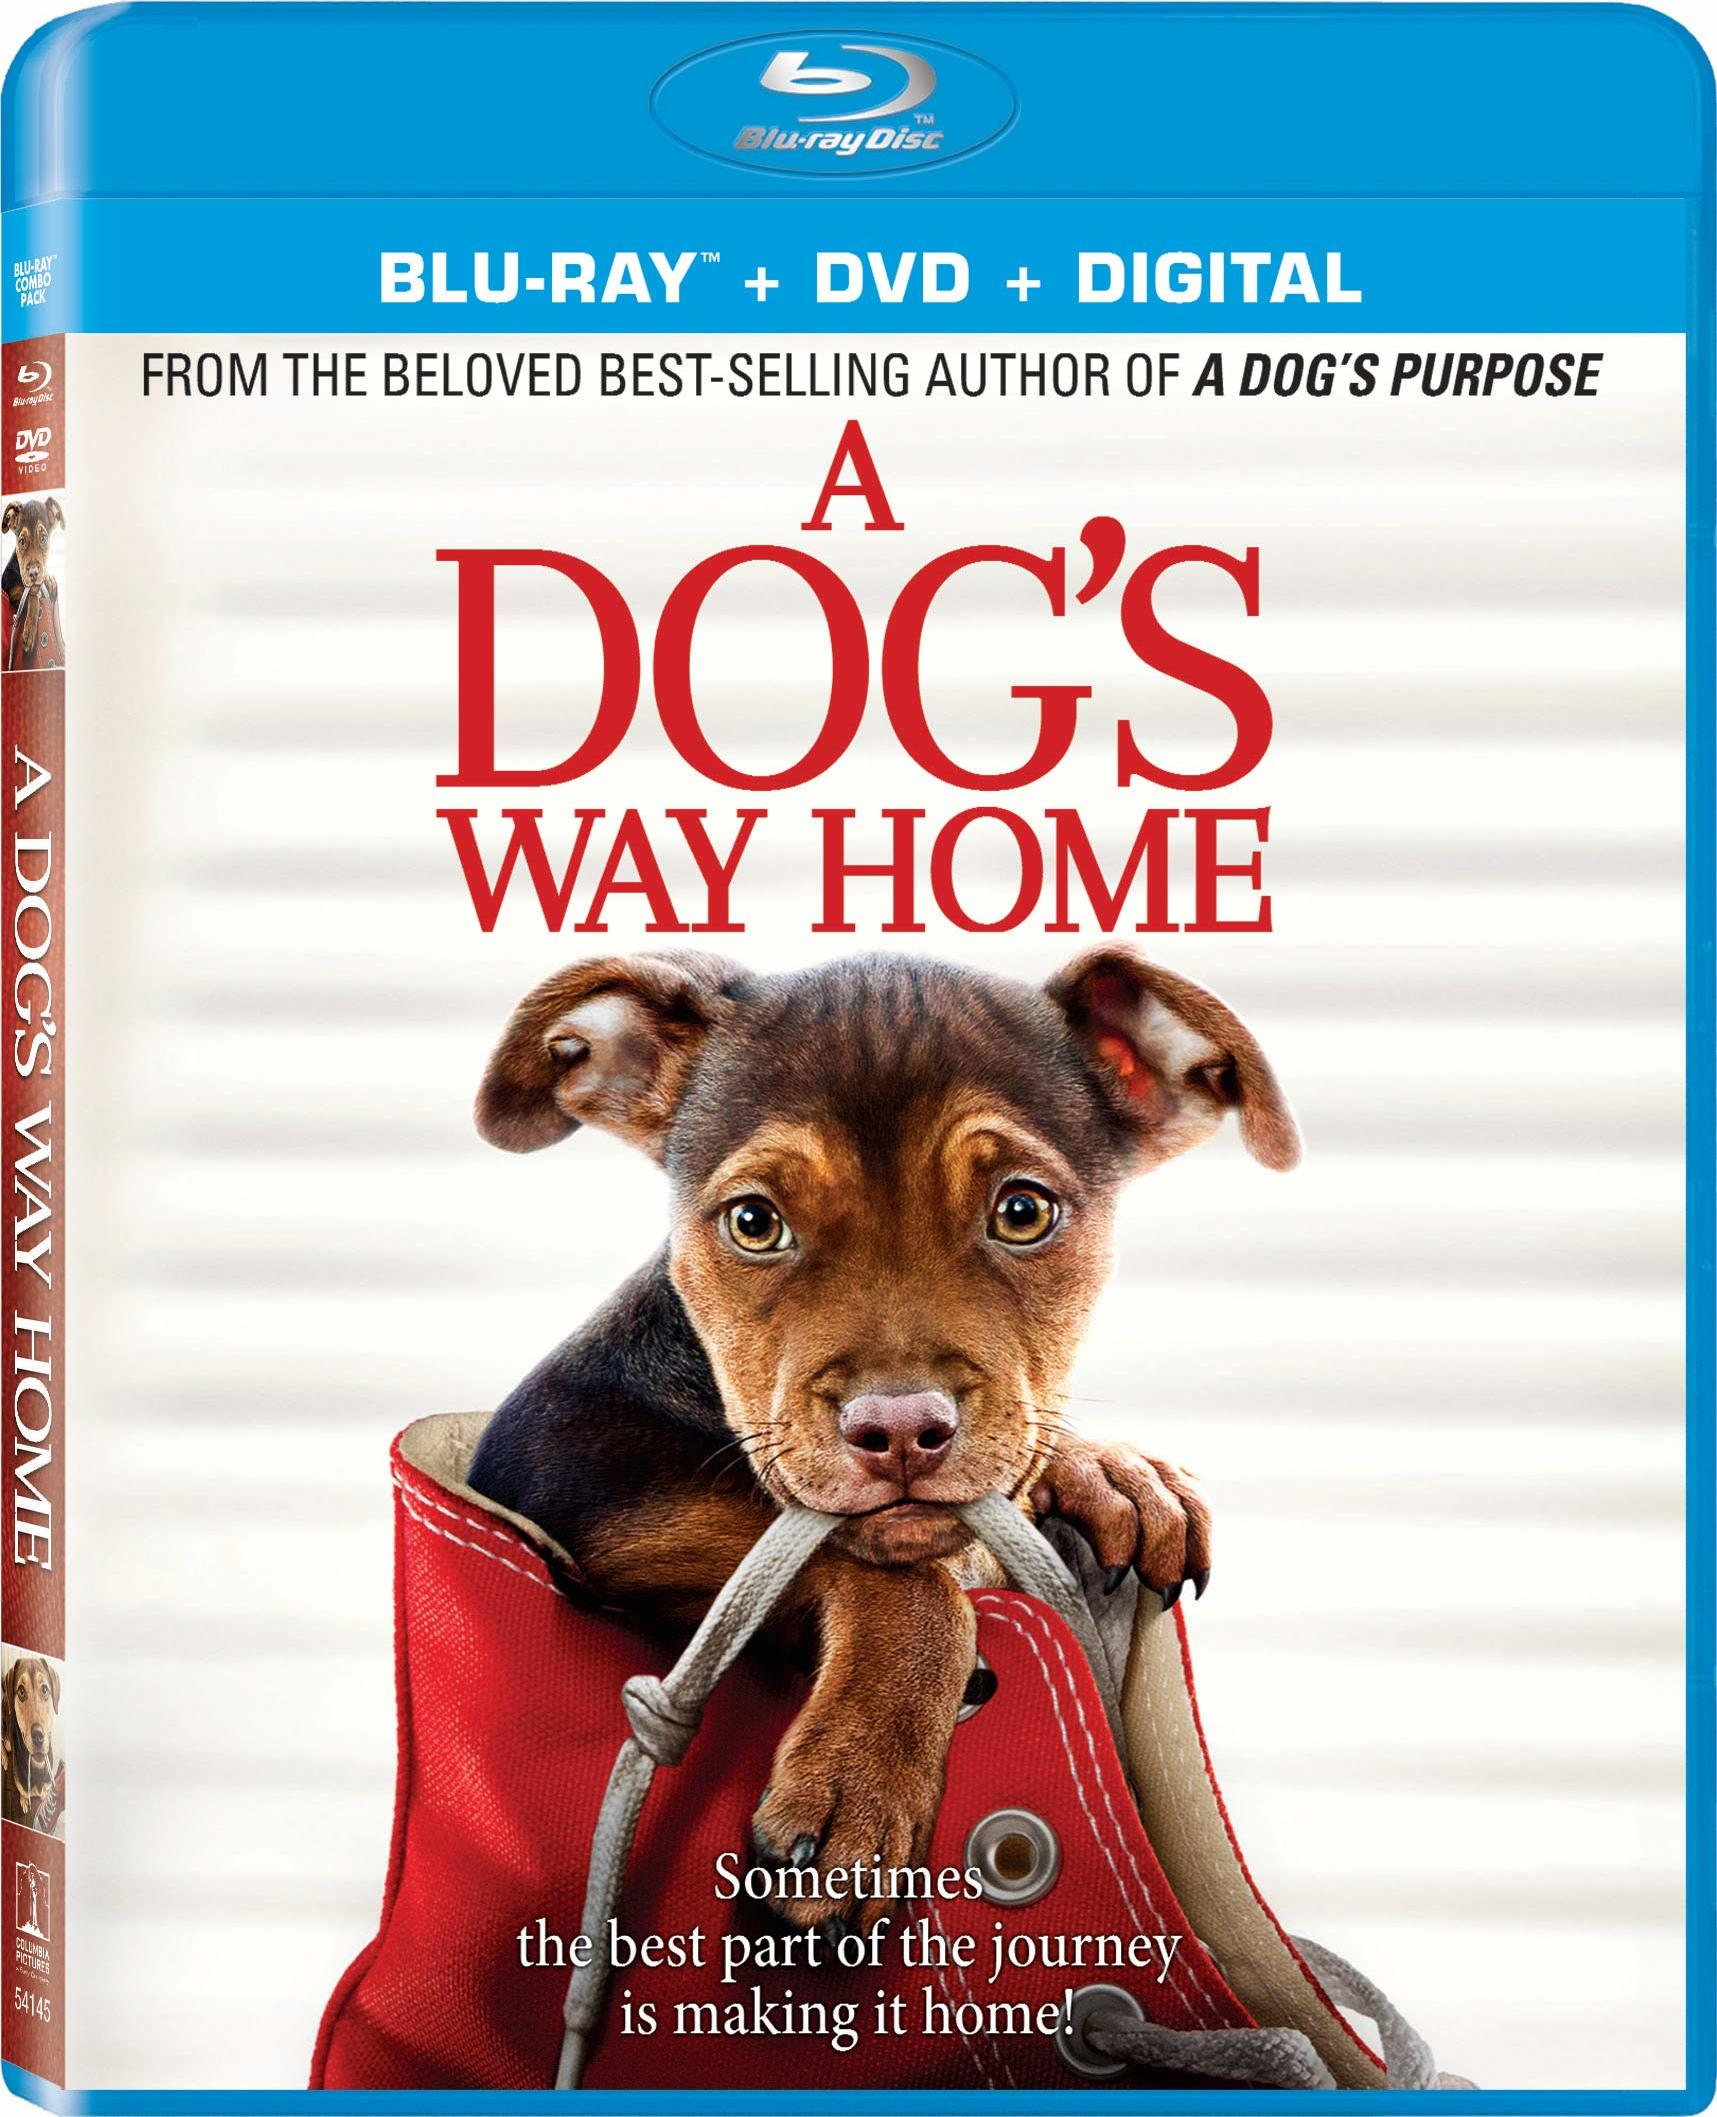 A Dog's Way Home (Blu-ray)(Region A)